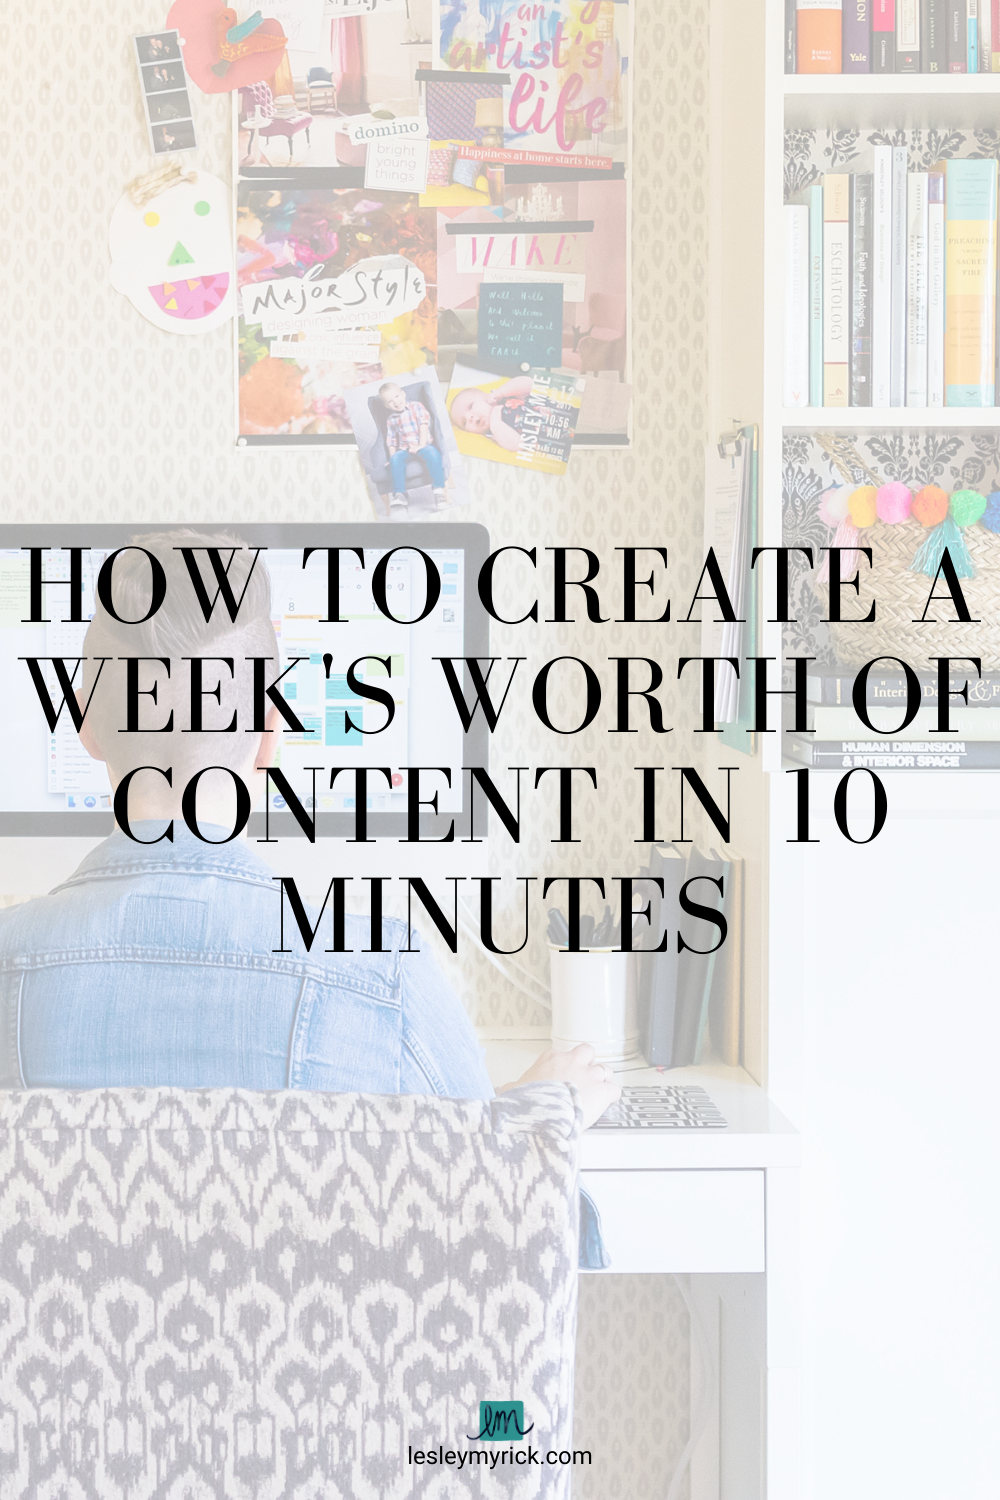 How to Create a Week's Worth of Social Media Content in 10 Minutes from interior designer, blogger, and podcaster Lesley Myrick